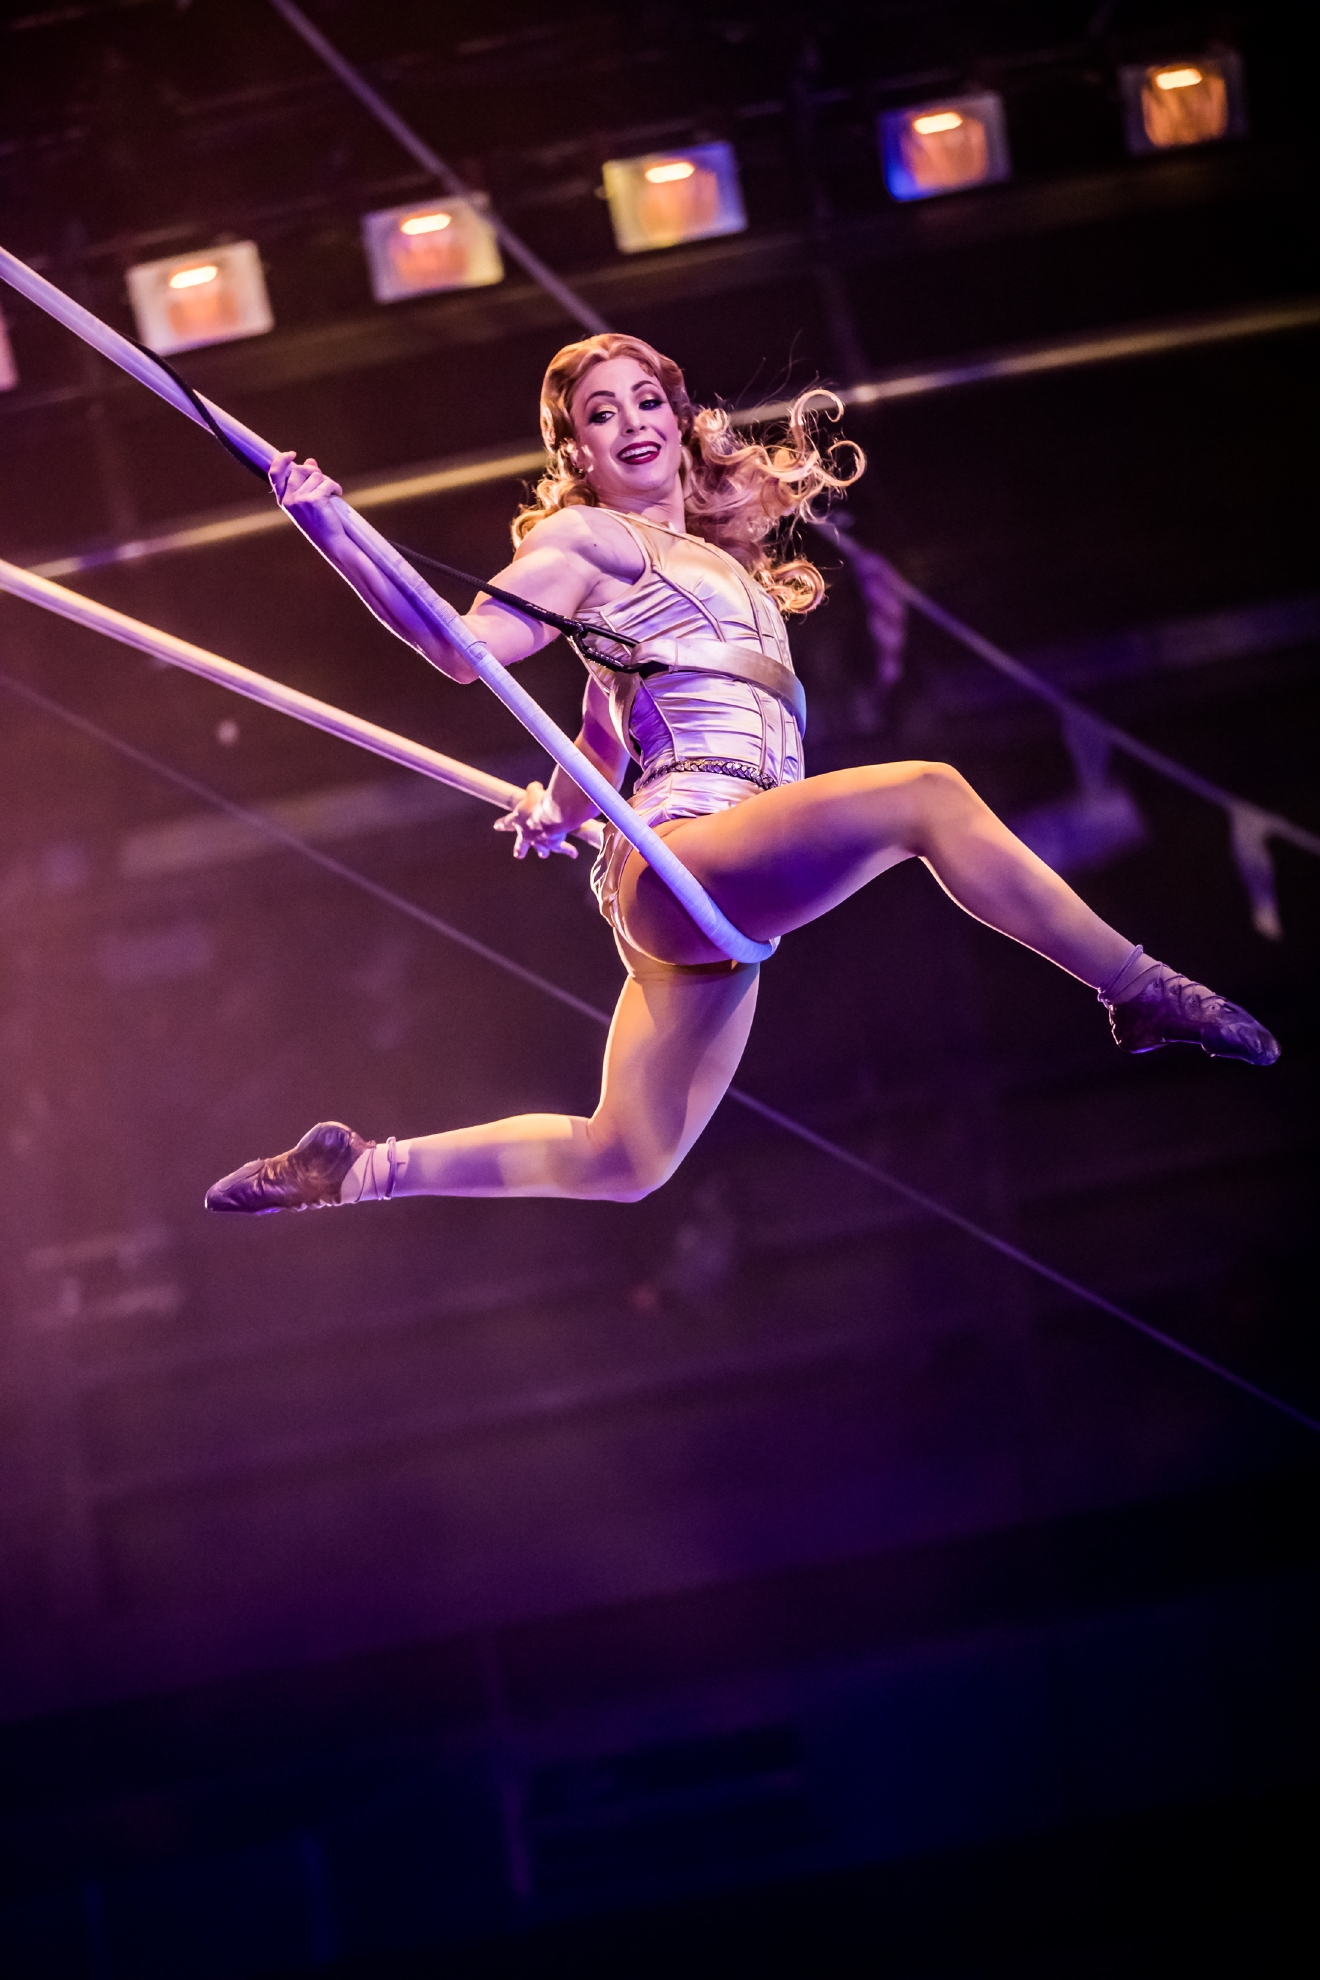 One Night for One Drop 2017 features breathtaking aerial routines at the Zumanity Theatre in Las Vegas, March 3, 2017. (Photo courtesy of Erik Kabik/ErikKabik.com)